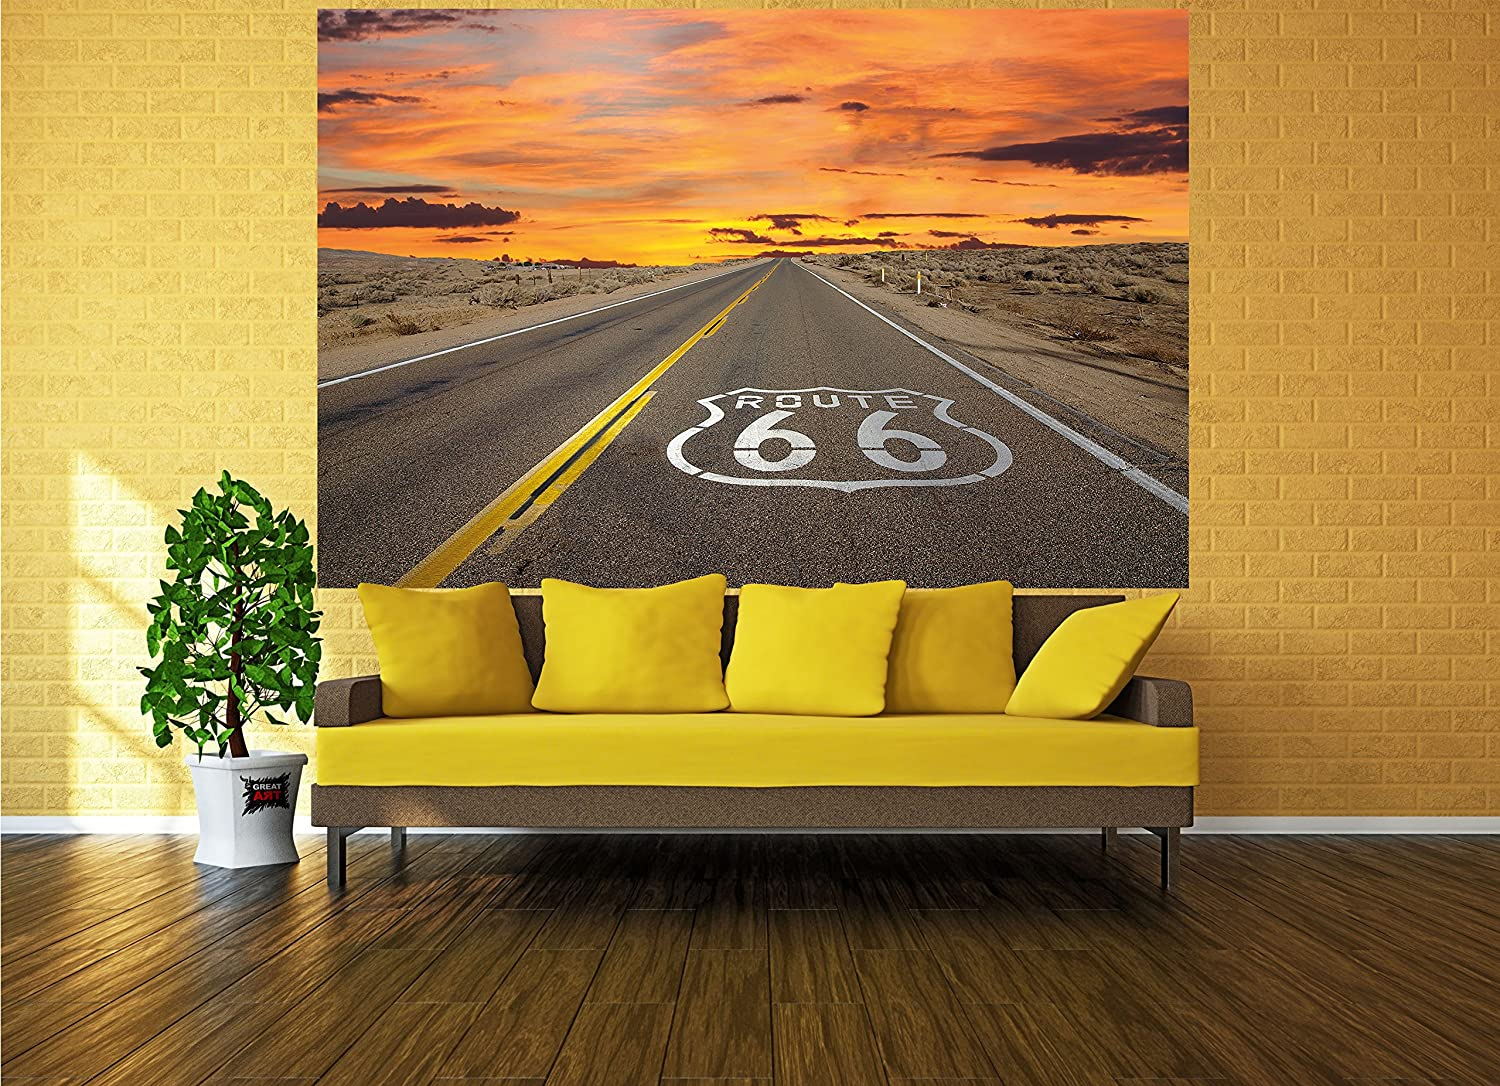 Route 66 picture wallpaper - American highway wallpaper - poster XXL ...